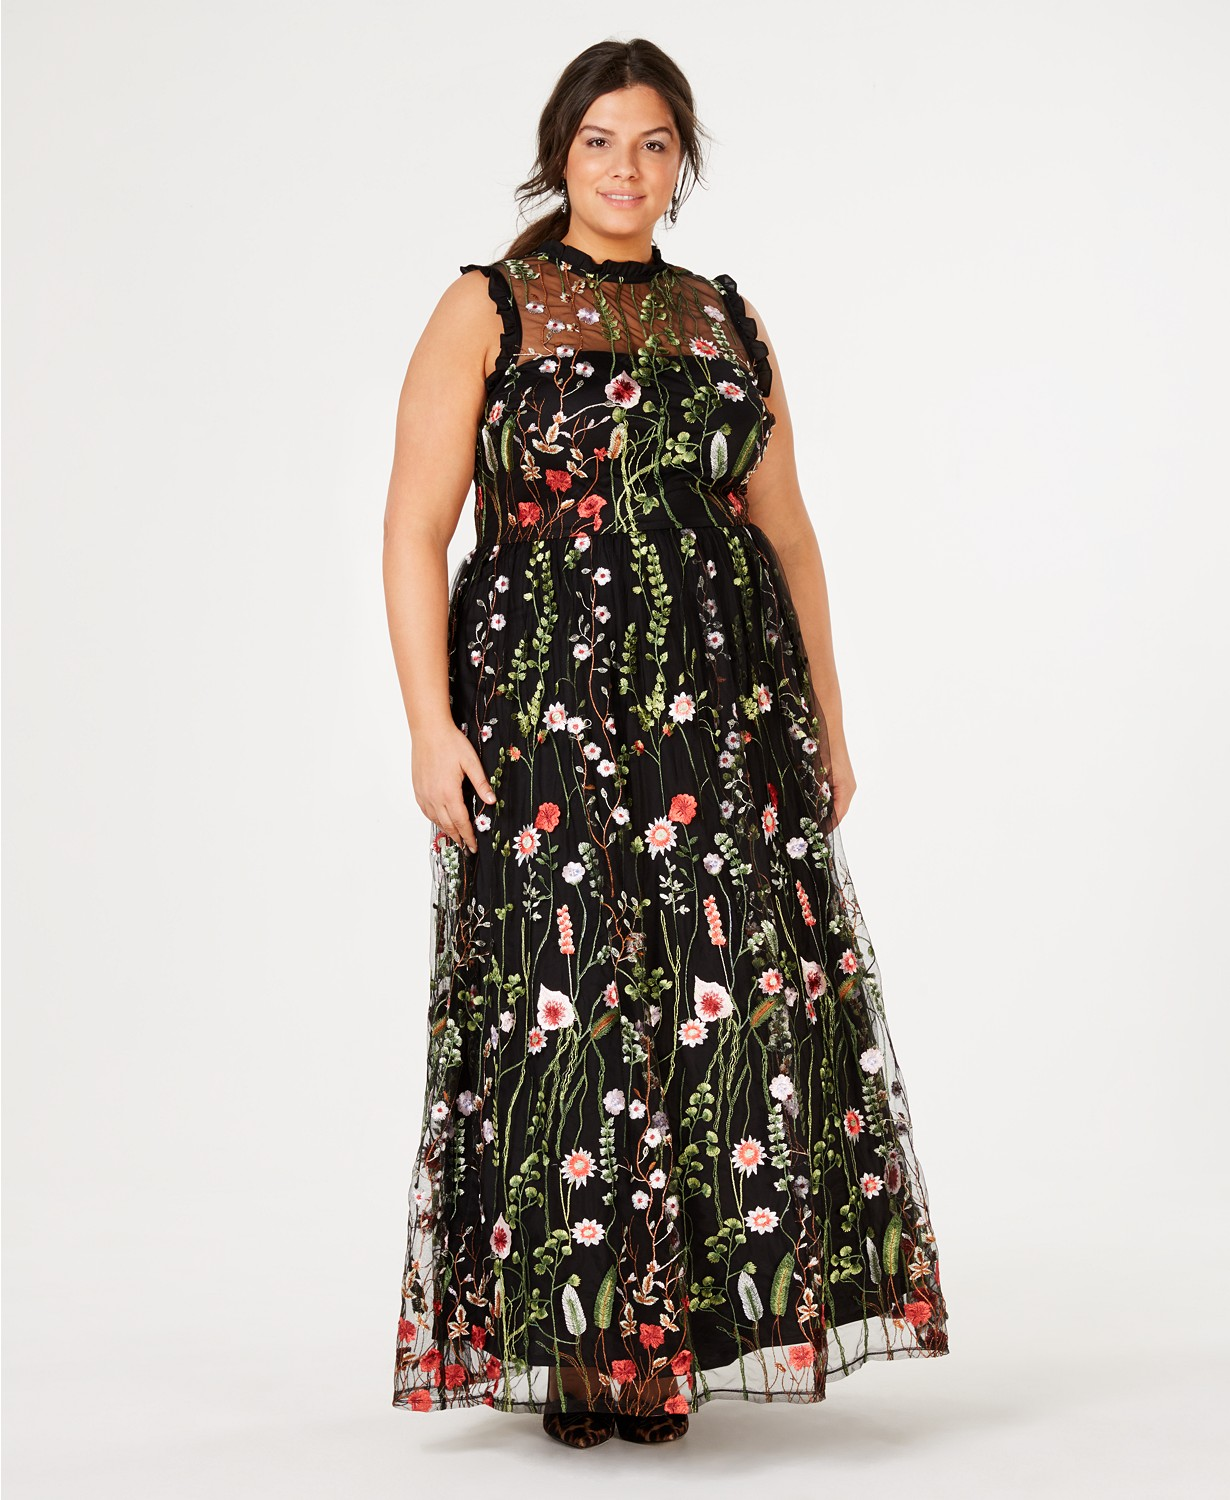 Macy's embroidered maxi